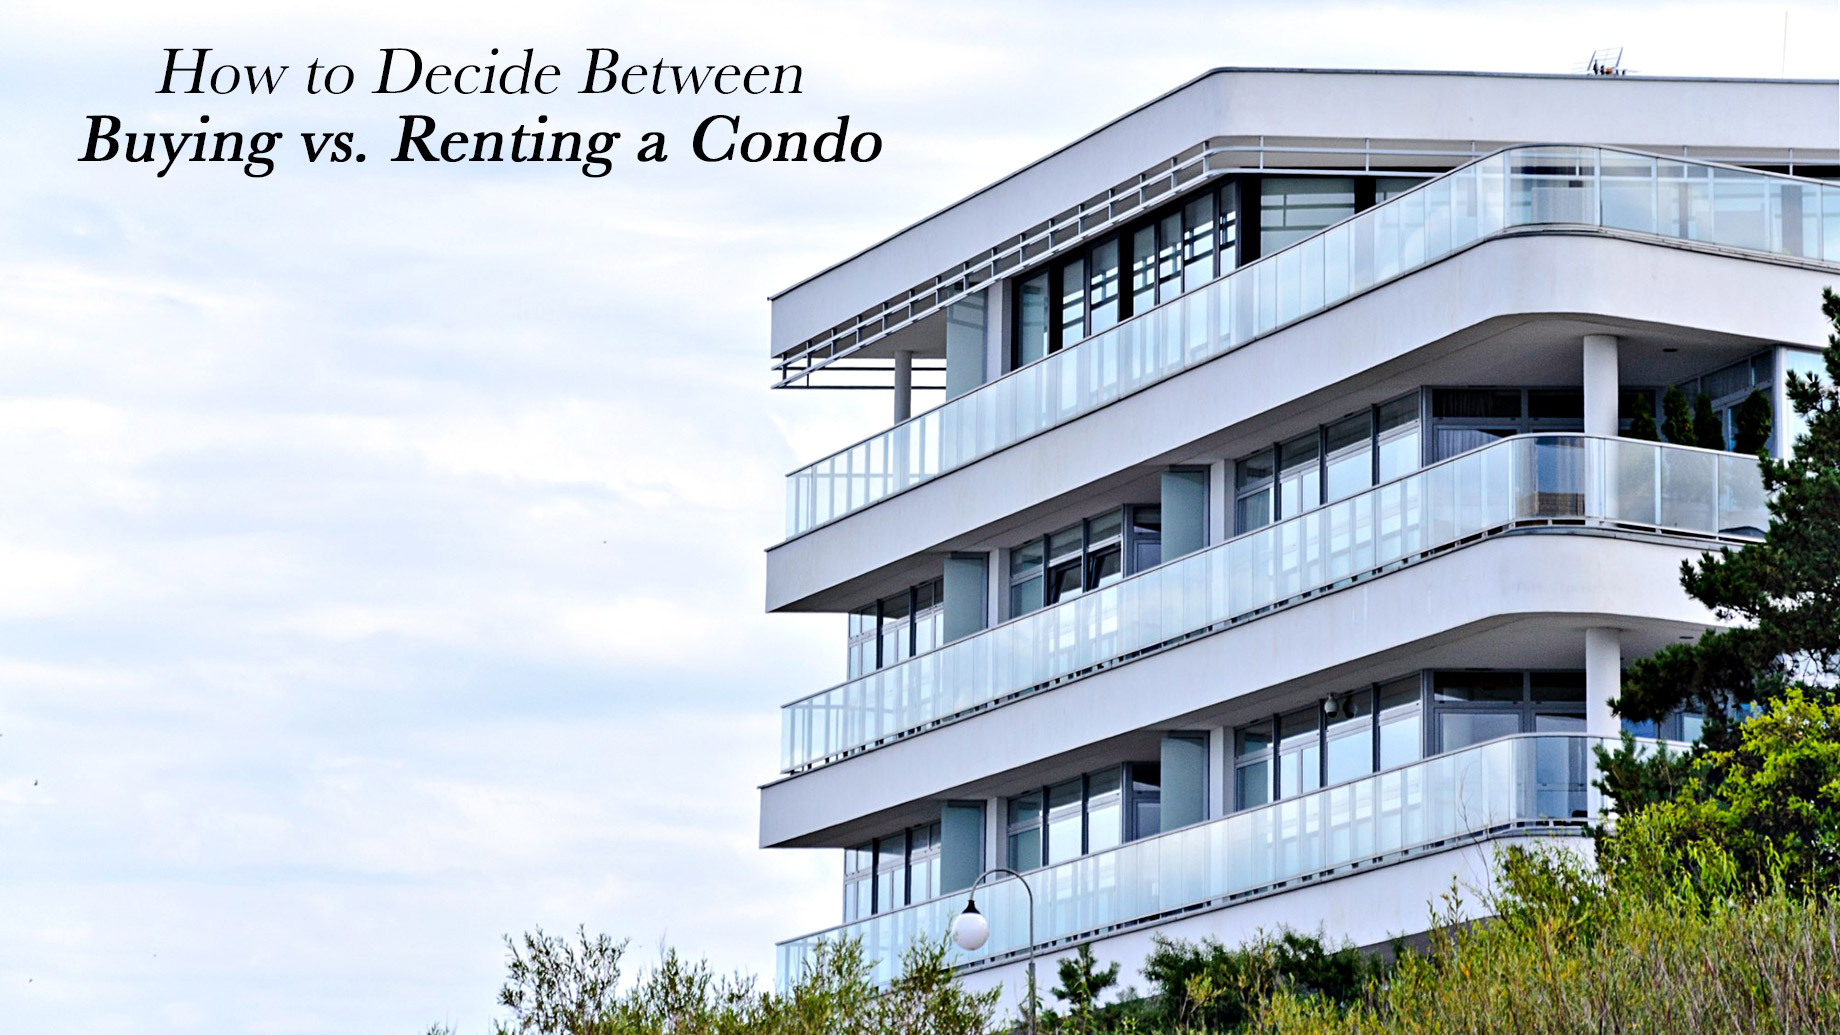 How to Decide Between Buying vs. Renting a Condo